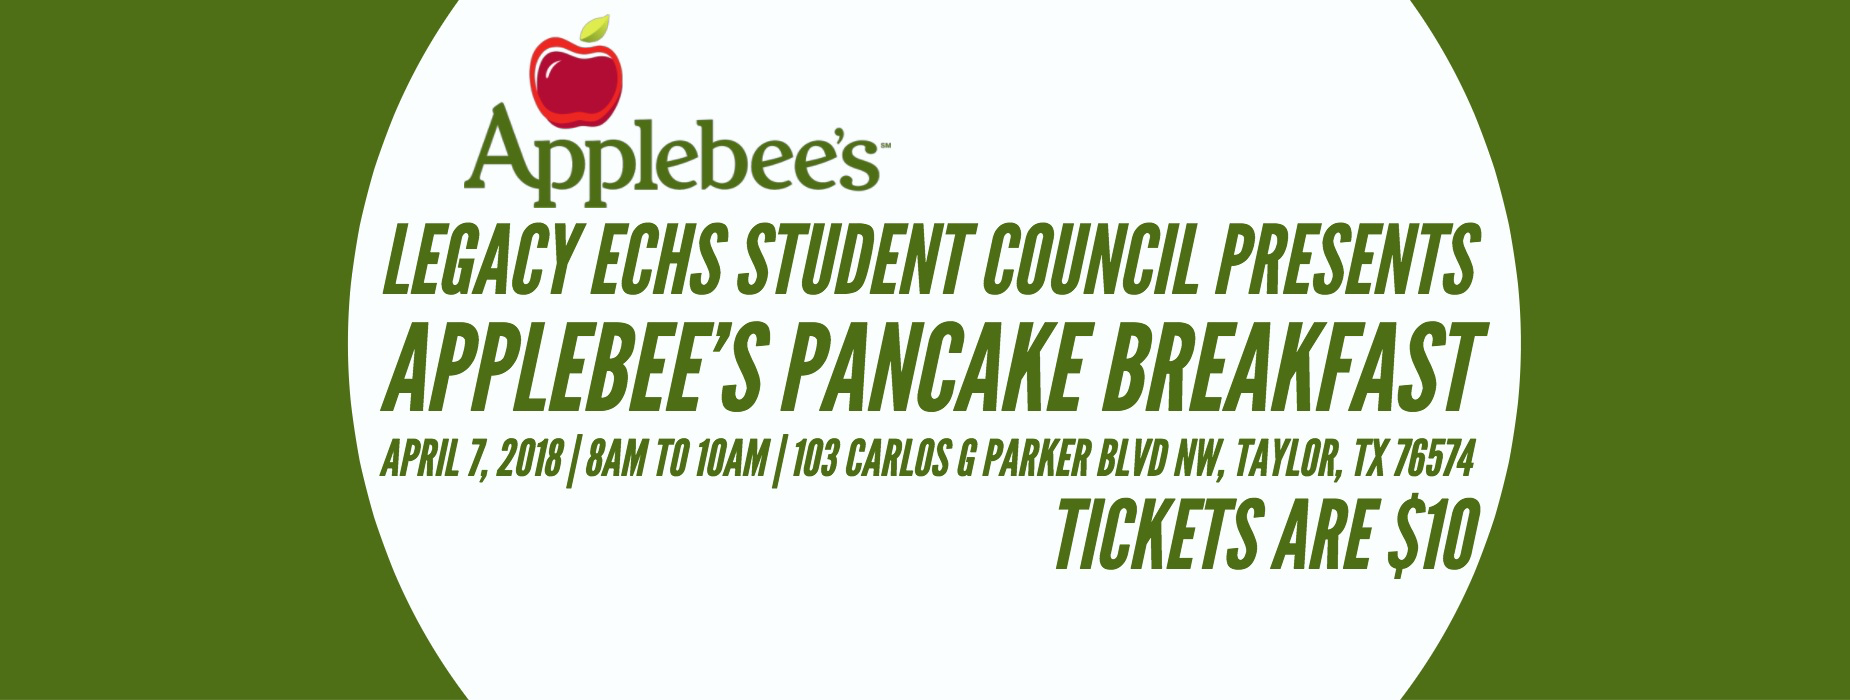 Applebee's Pancake Breakfast, April 7th from 8AM - 10AM. Tickets are $10.